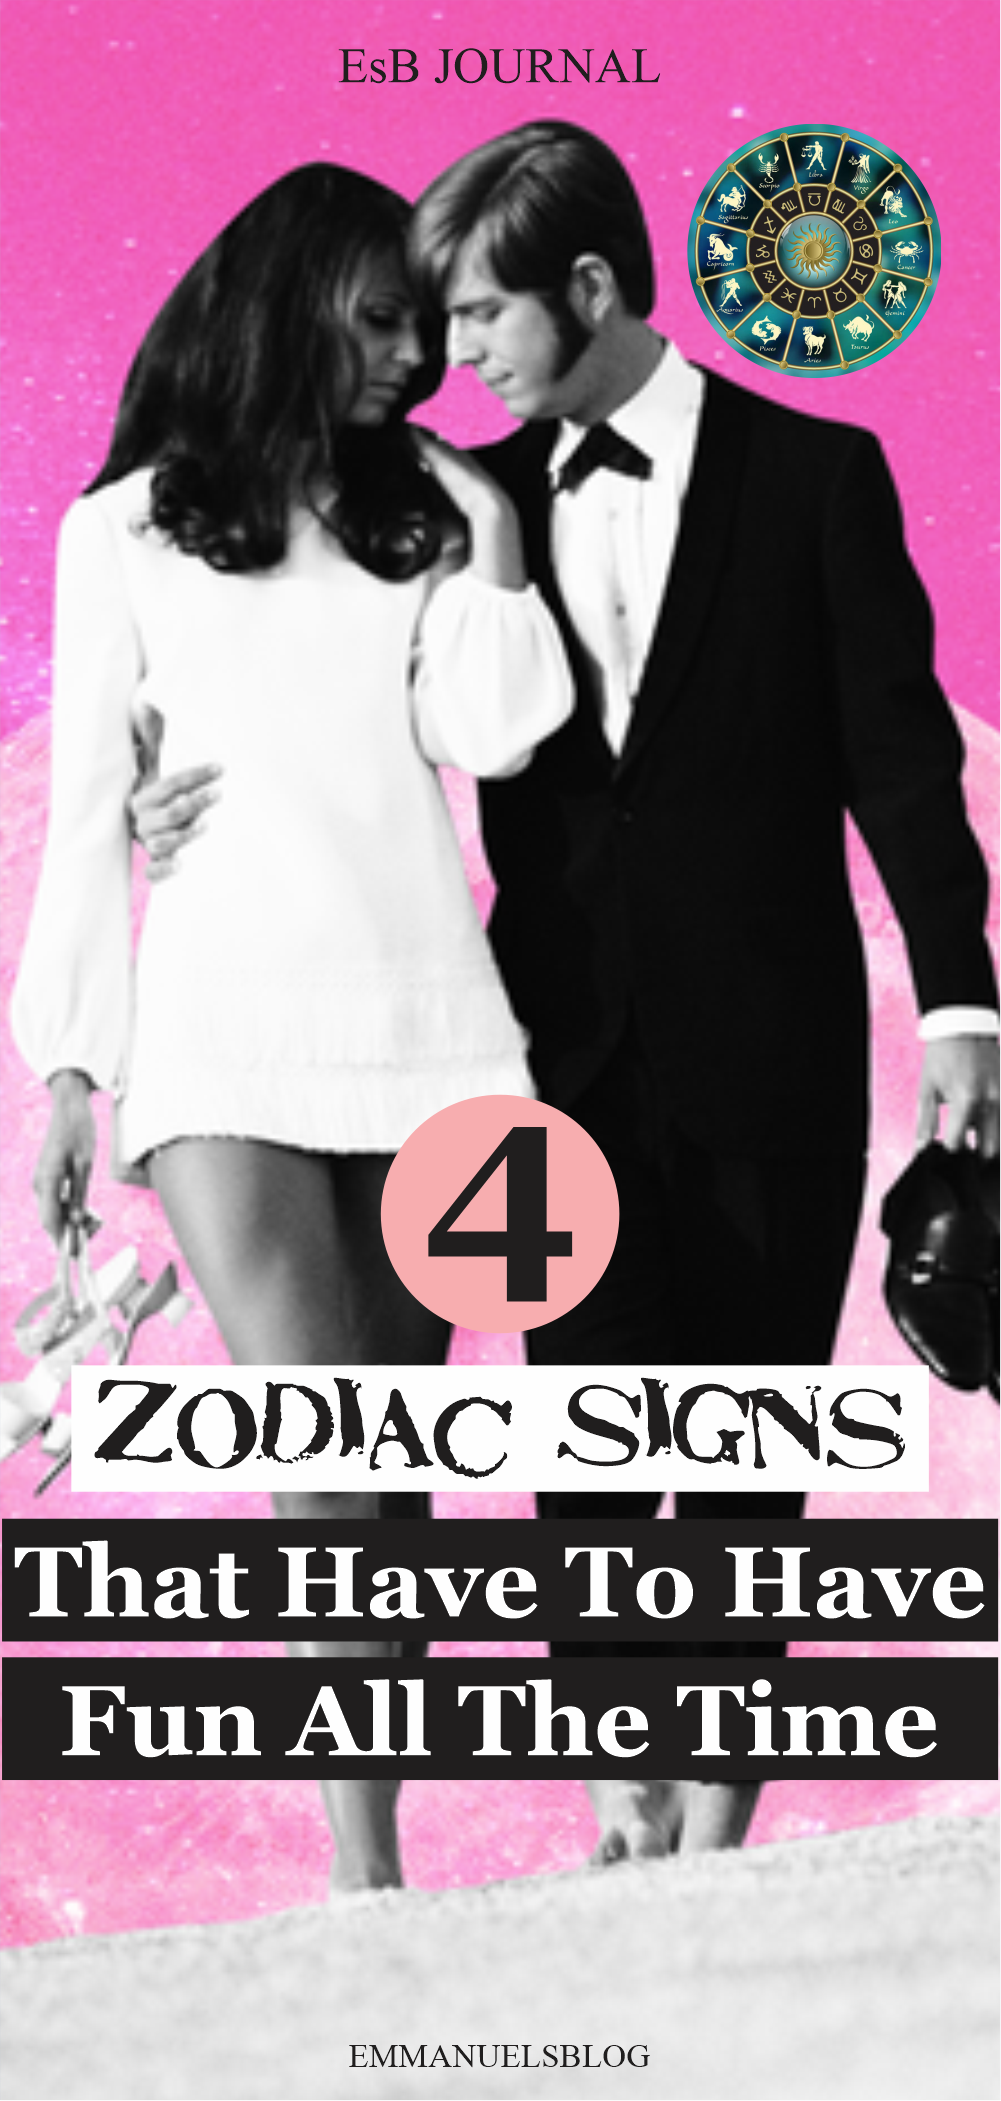 4 Zodiac Signs That Have To Have Fun All The Time